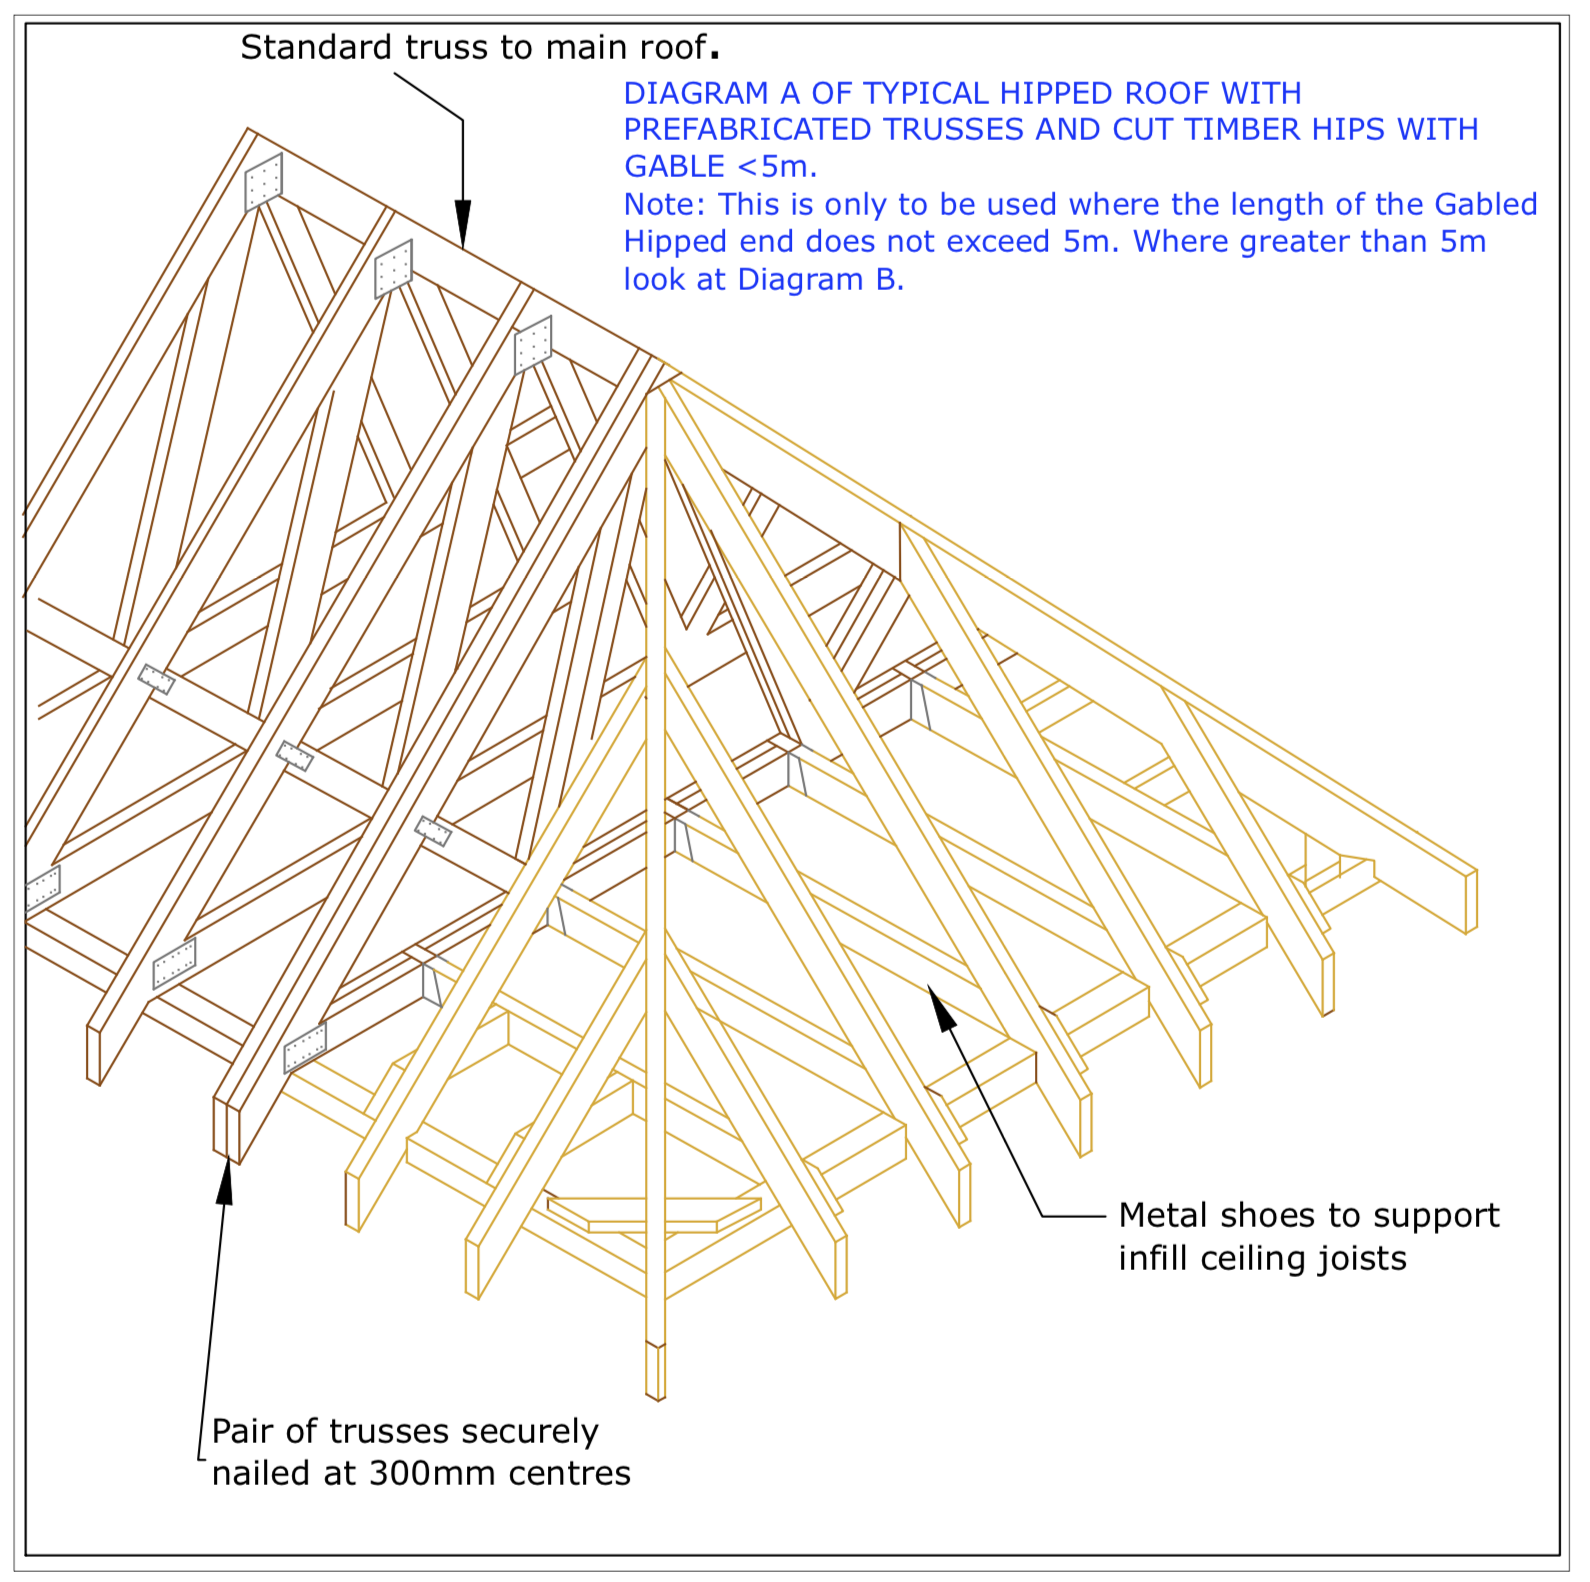 DIAGRAM D27  Hipped End on Gable less than 5m in length